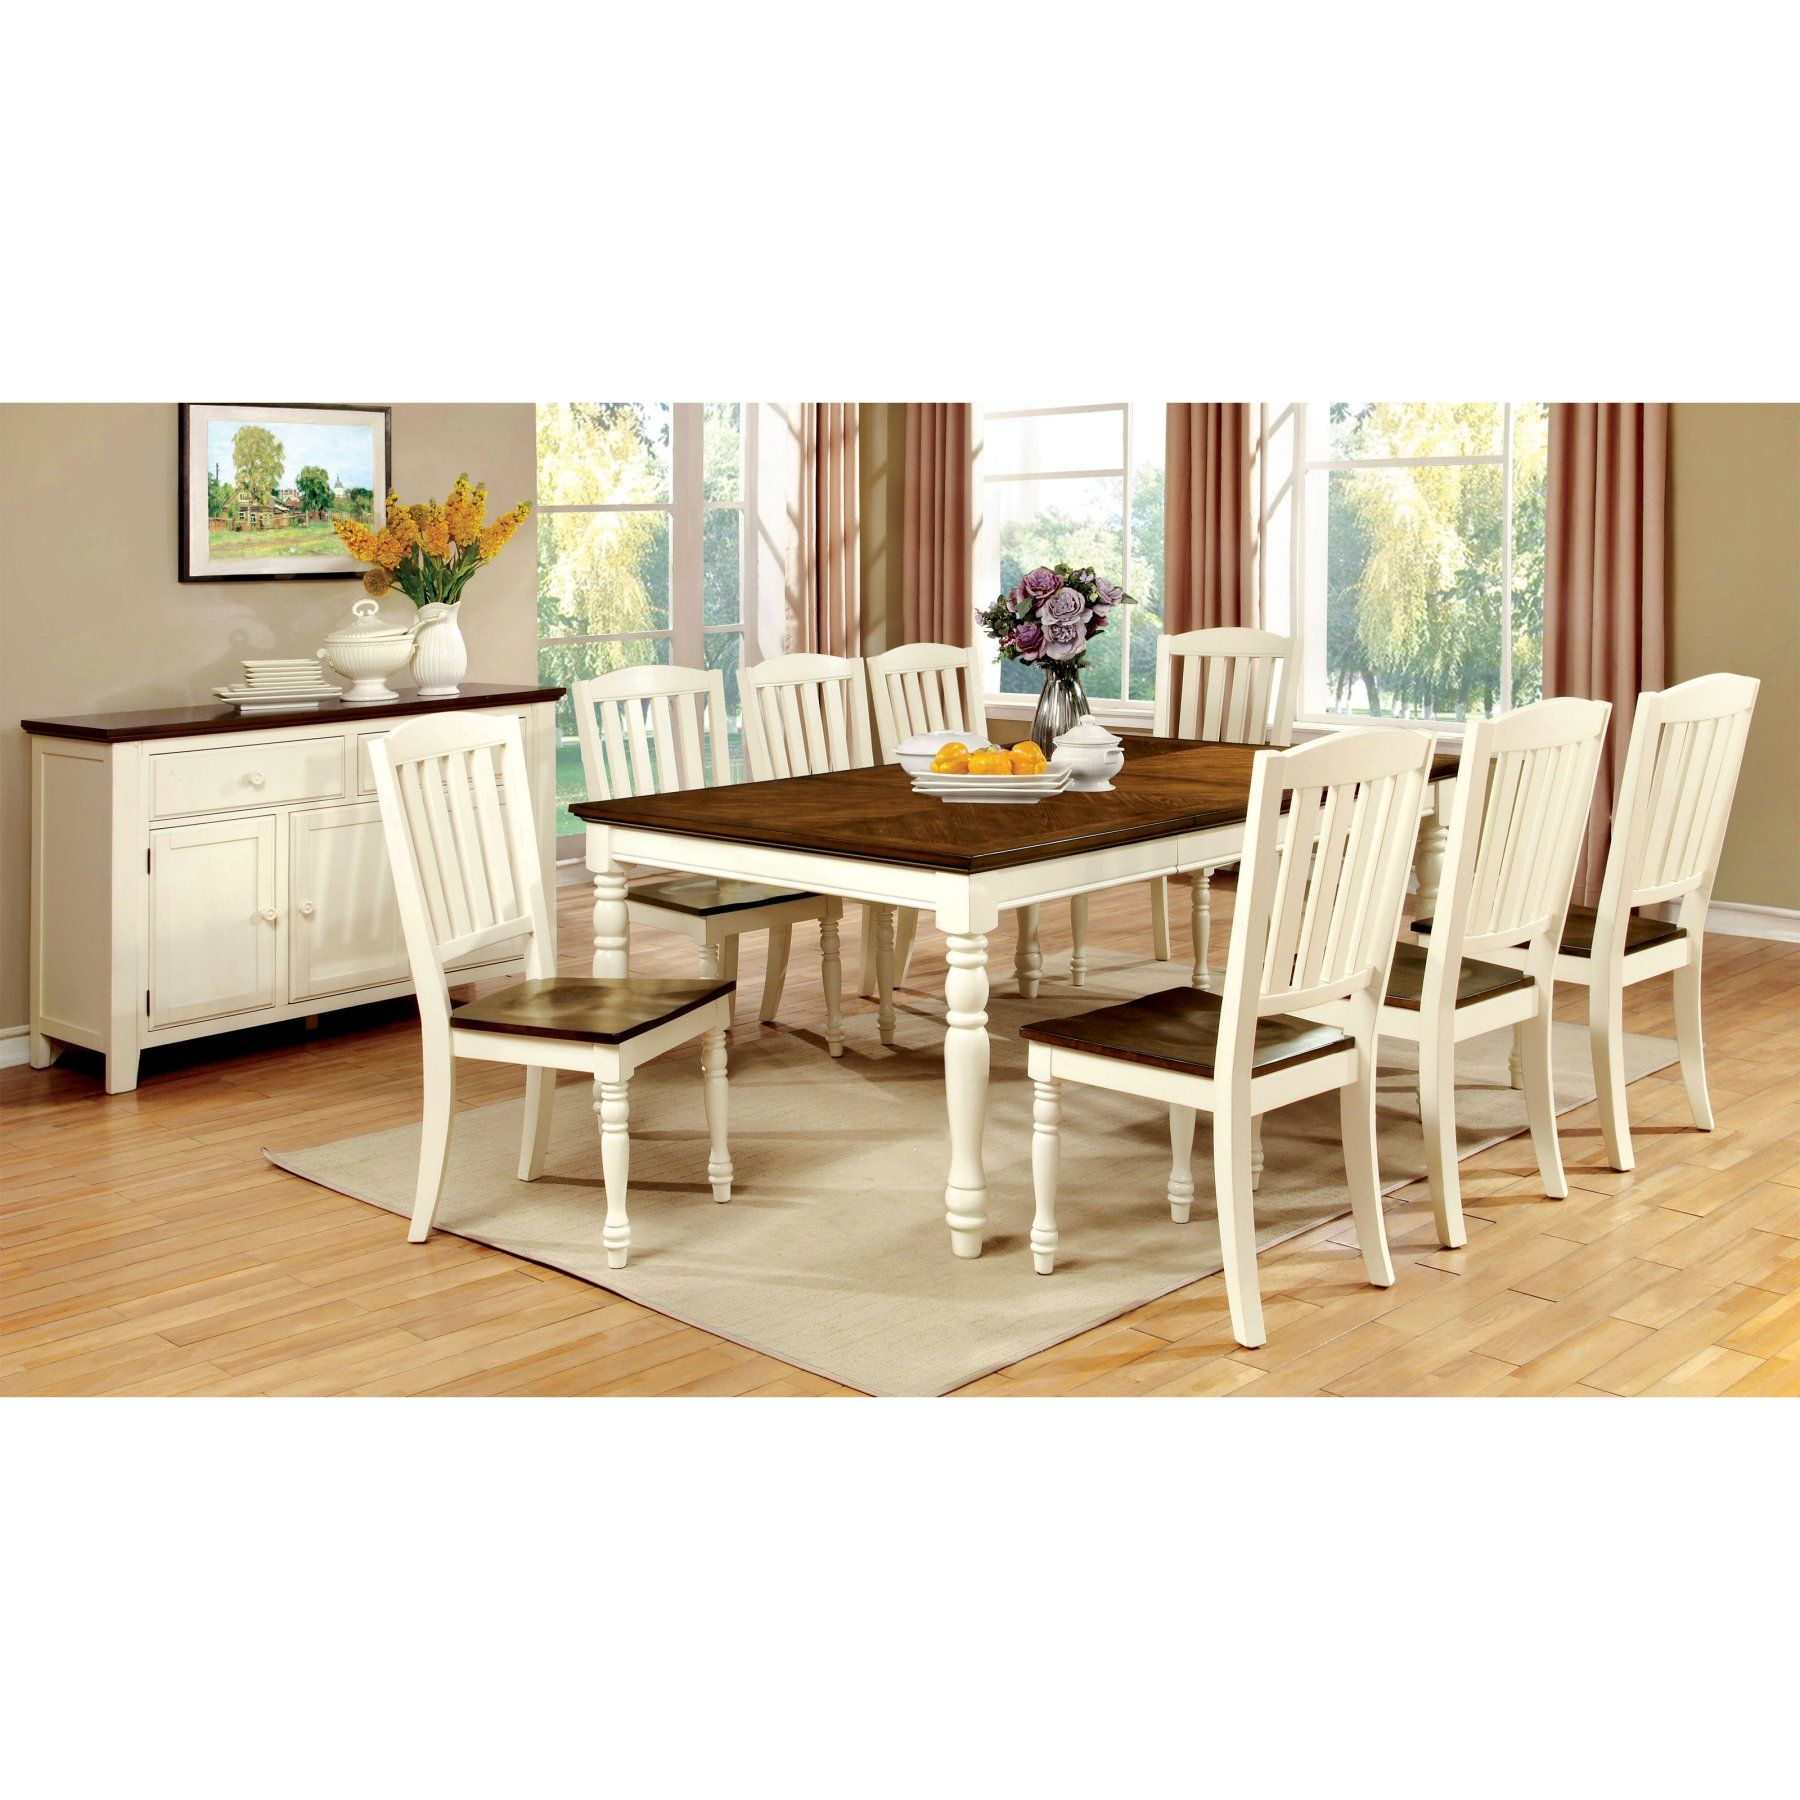 cottage dining rooms. Furniture Of America Besette Cottage Dining Table - IDF-3216T Rooms N